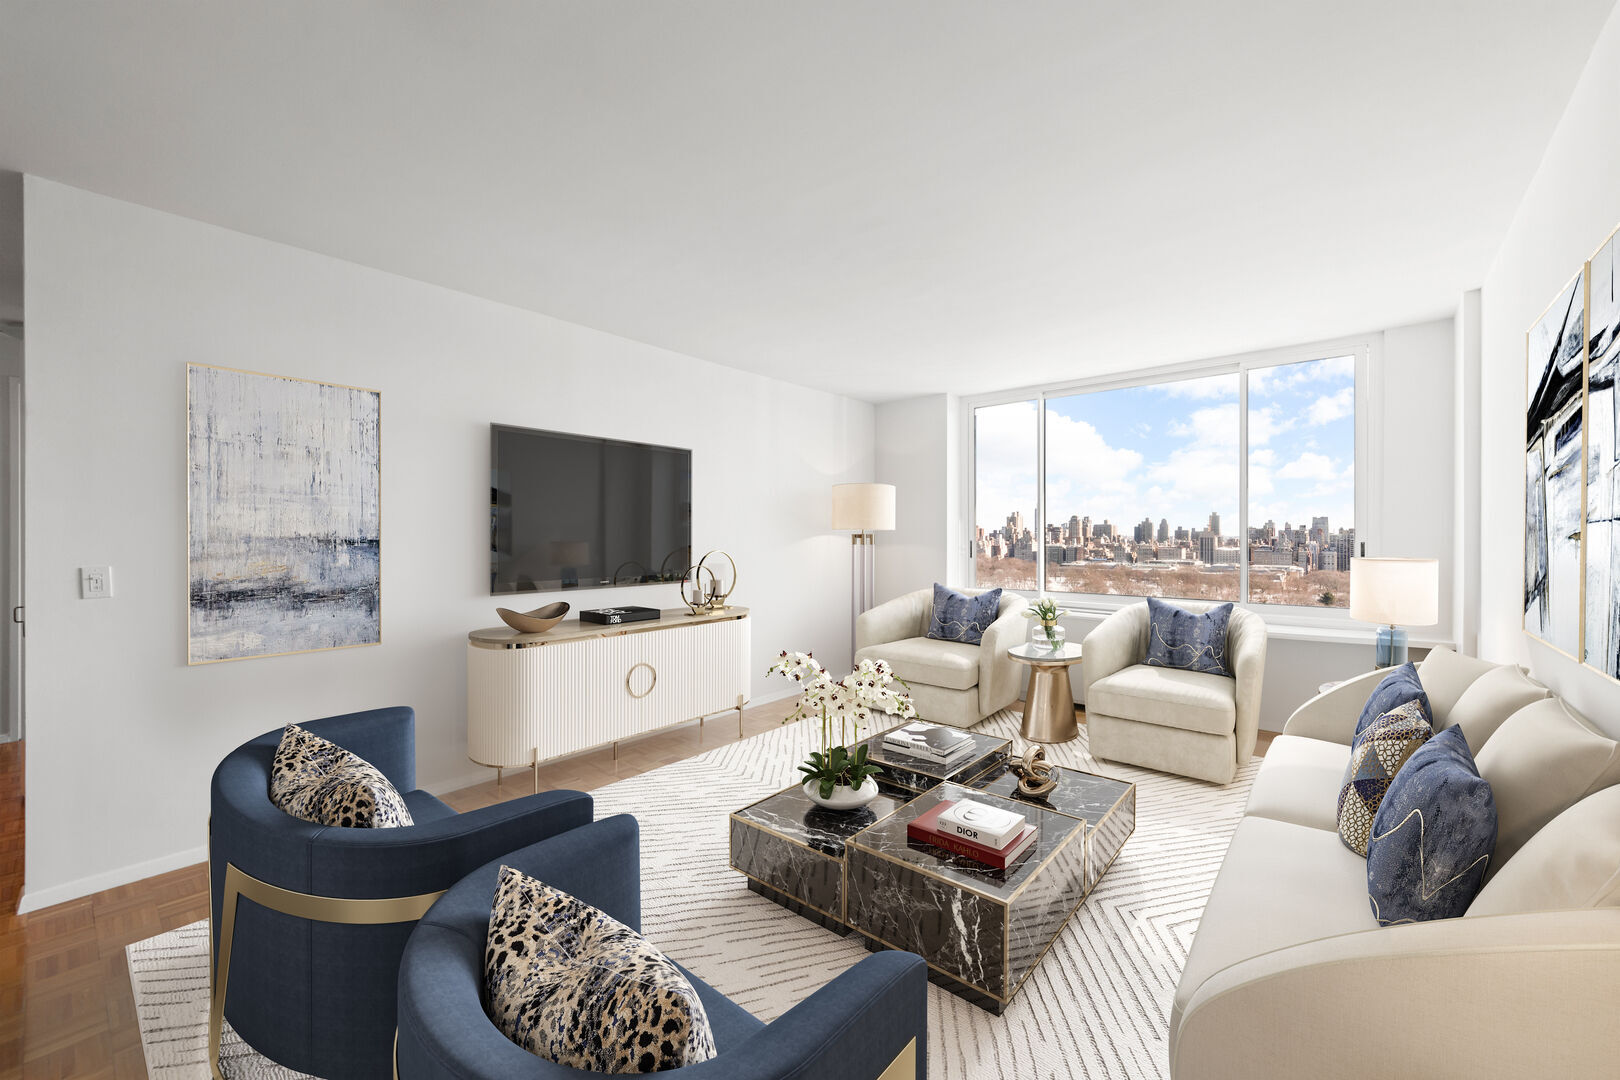 Apartment for sale at 101 West 79th Street, Apt 24-B